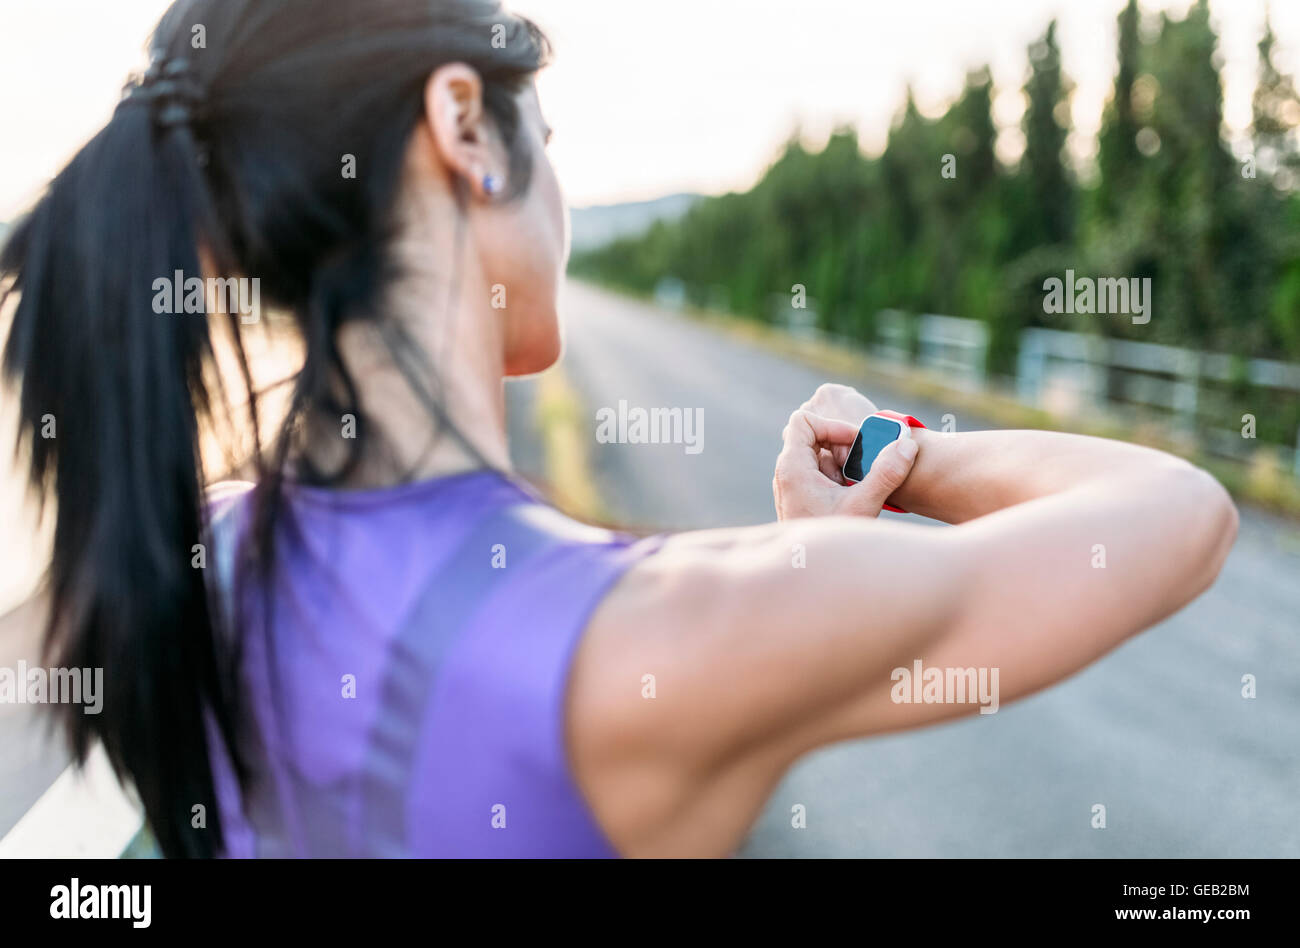 Woman adjustung settings of smart watch for outdoor training - Stock Image